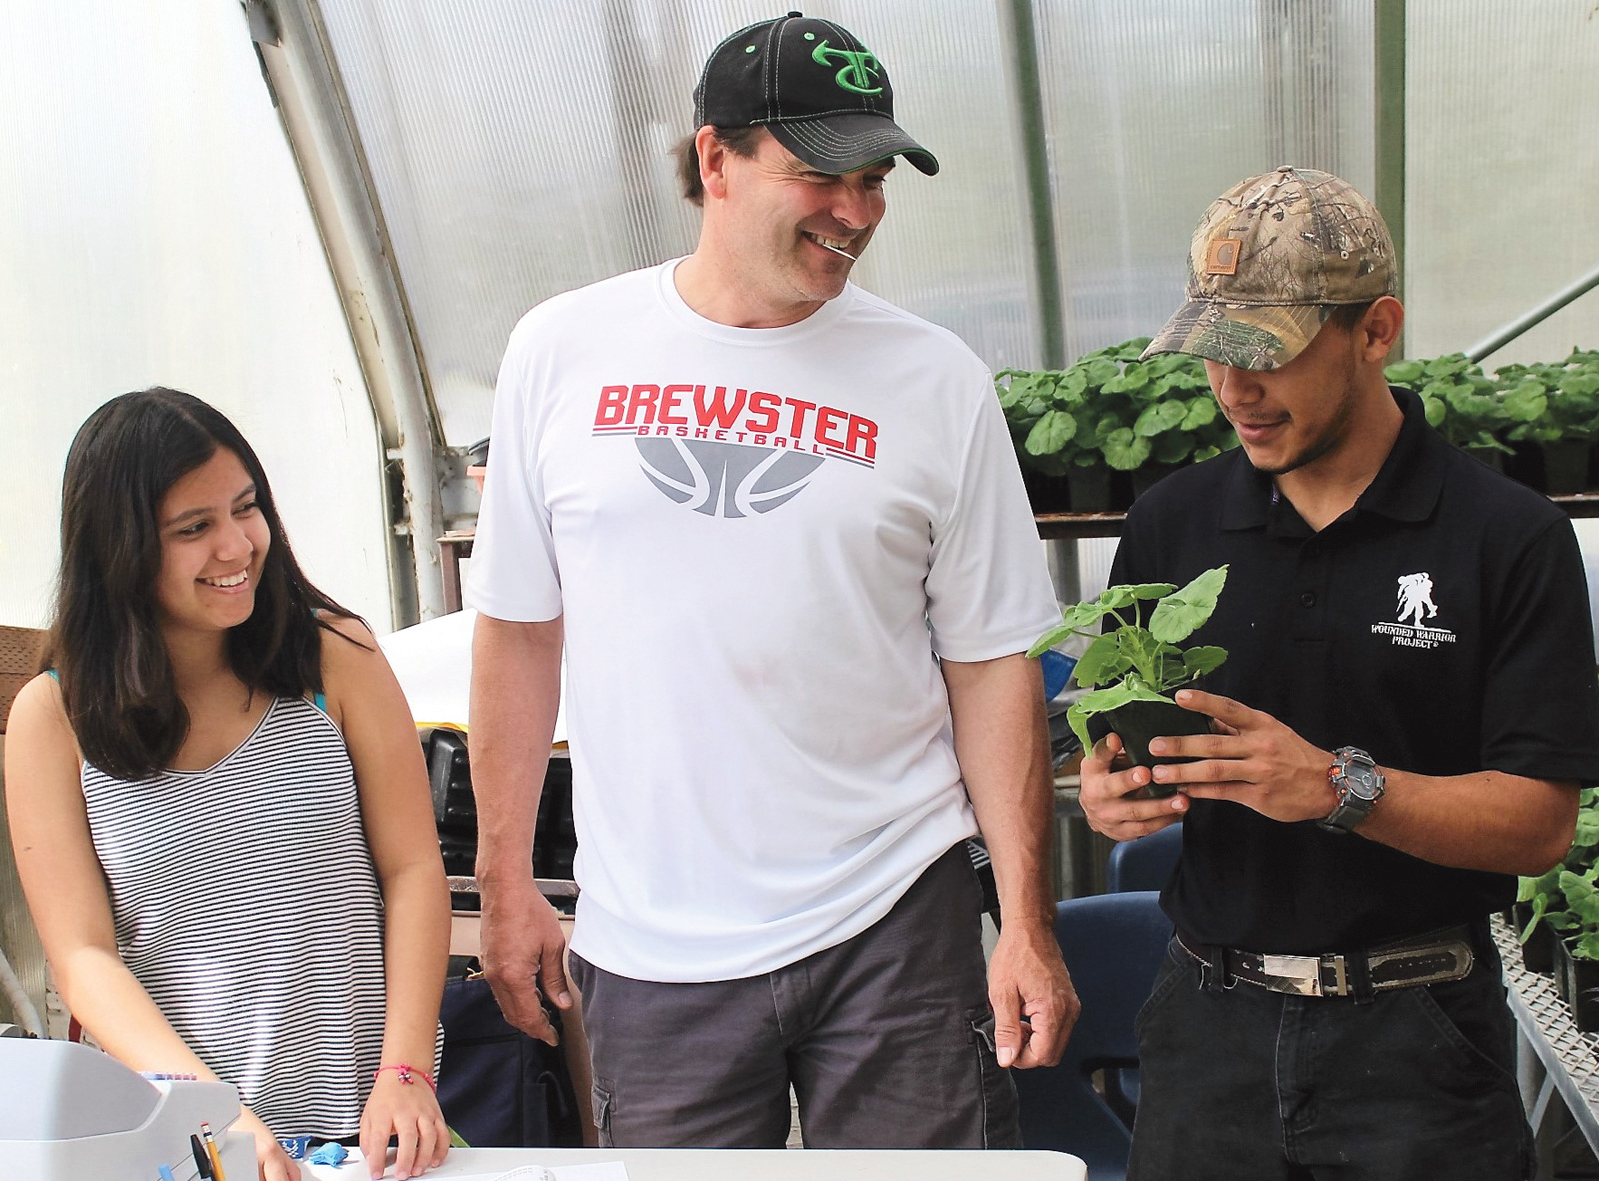 Brewster High School students Melissa Corrales and Erick Pamatz man the school greenhouse along with Ag advisor Todd Dezellem during last weekend's spring plant sale. The three also took a selection of plants to the Pateros Arbor Days celebration last Friday.